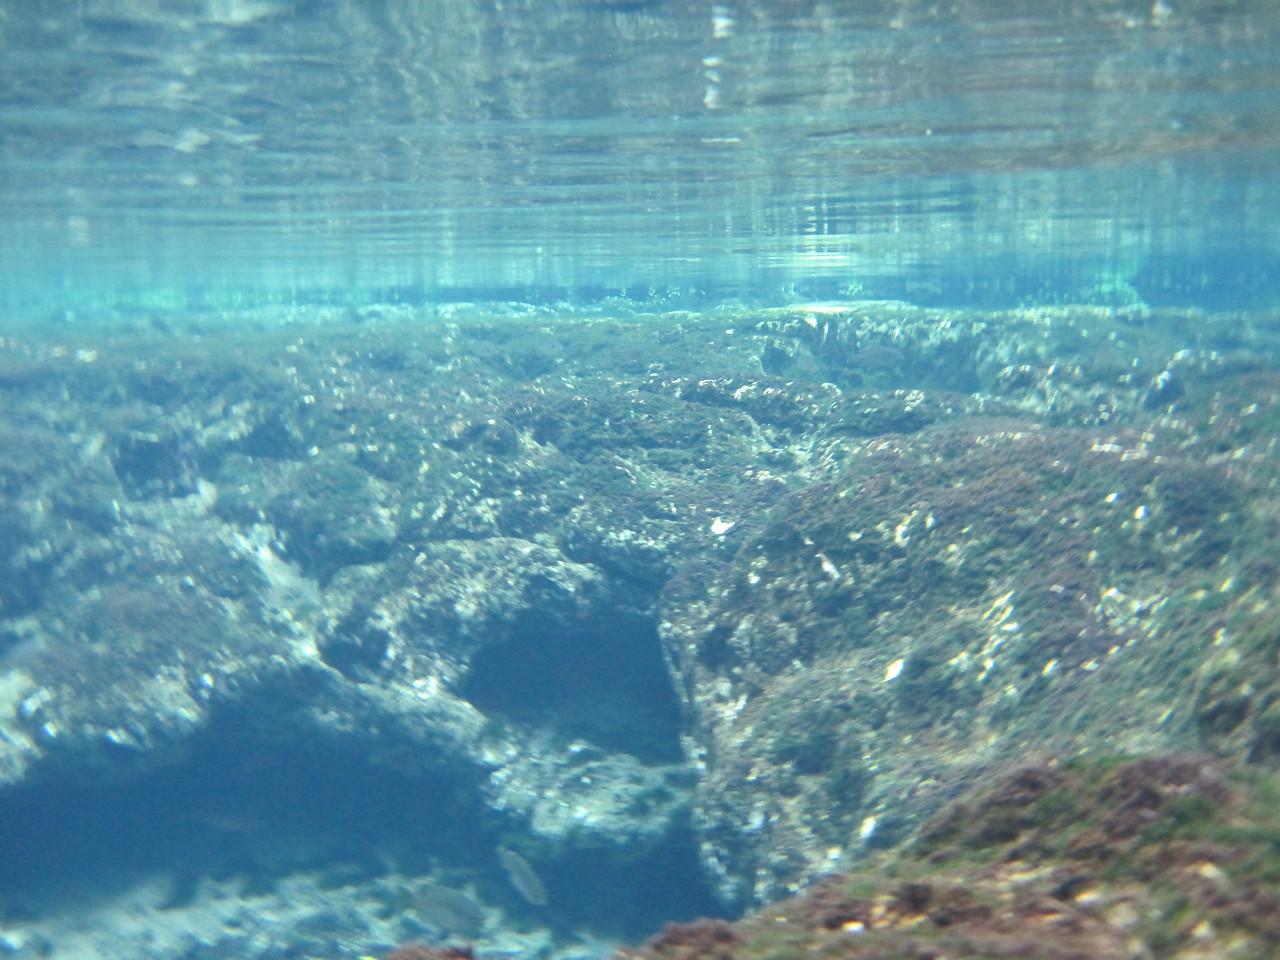 An underwater view of one of the springs.